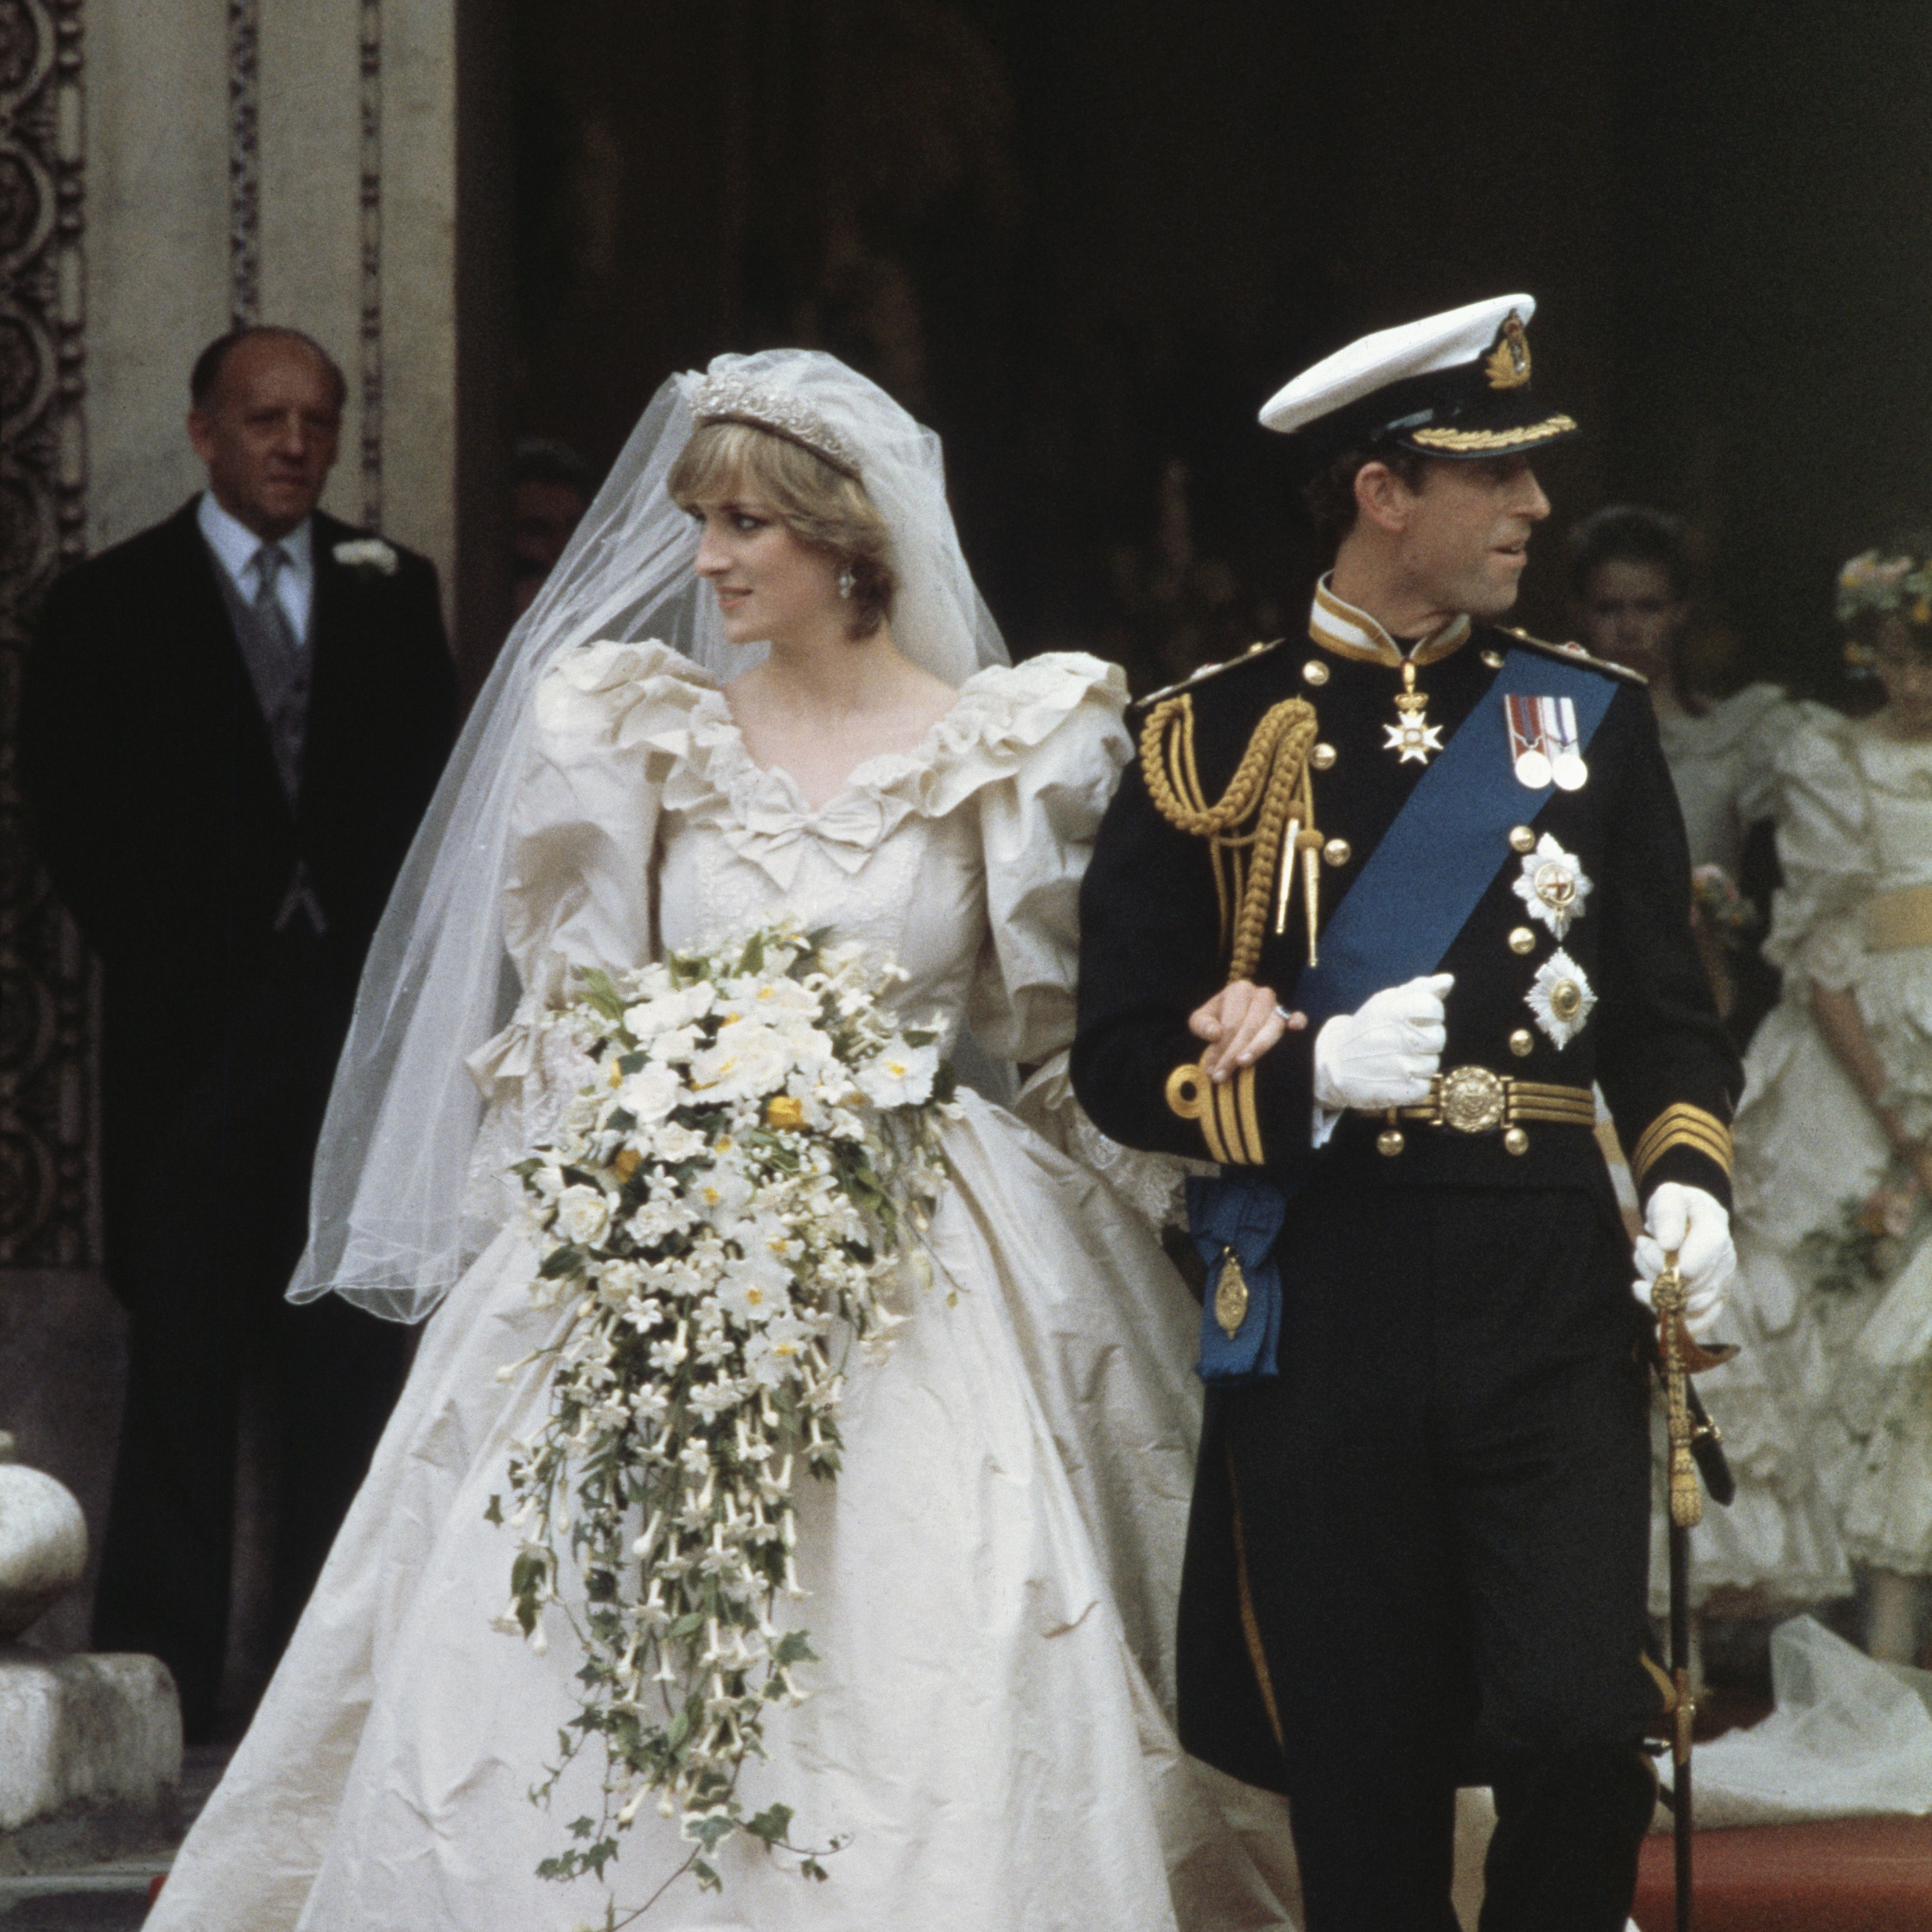 Prince Charles And Lady Diana Spencer After Their Wedding